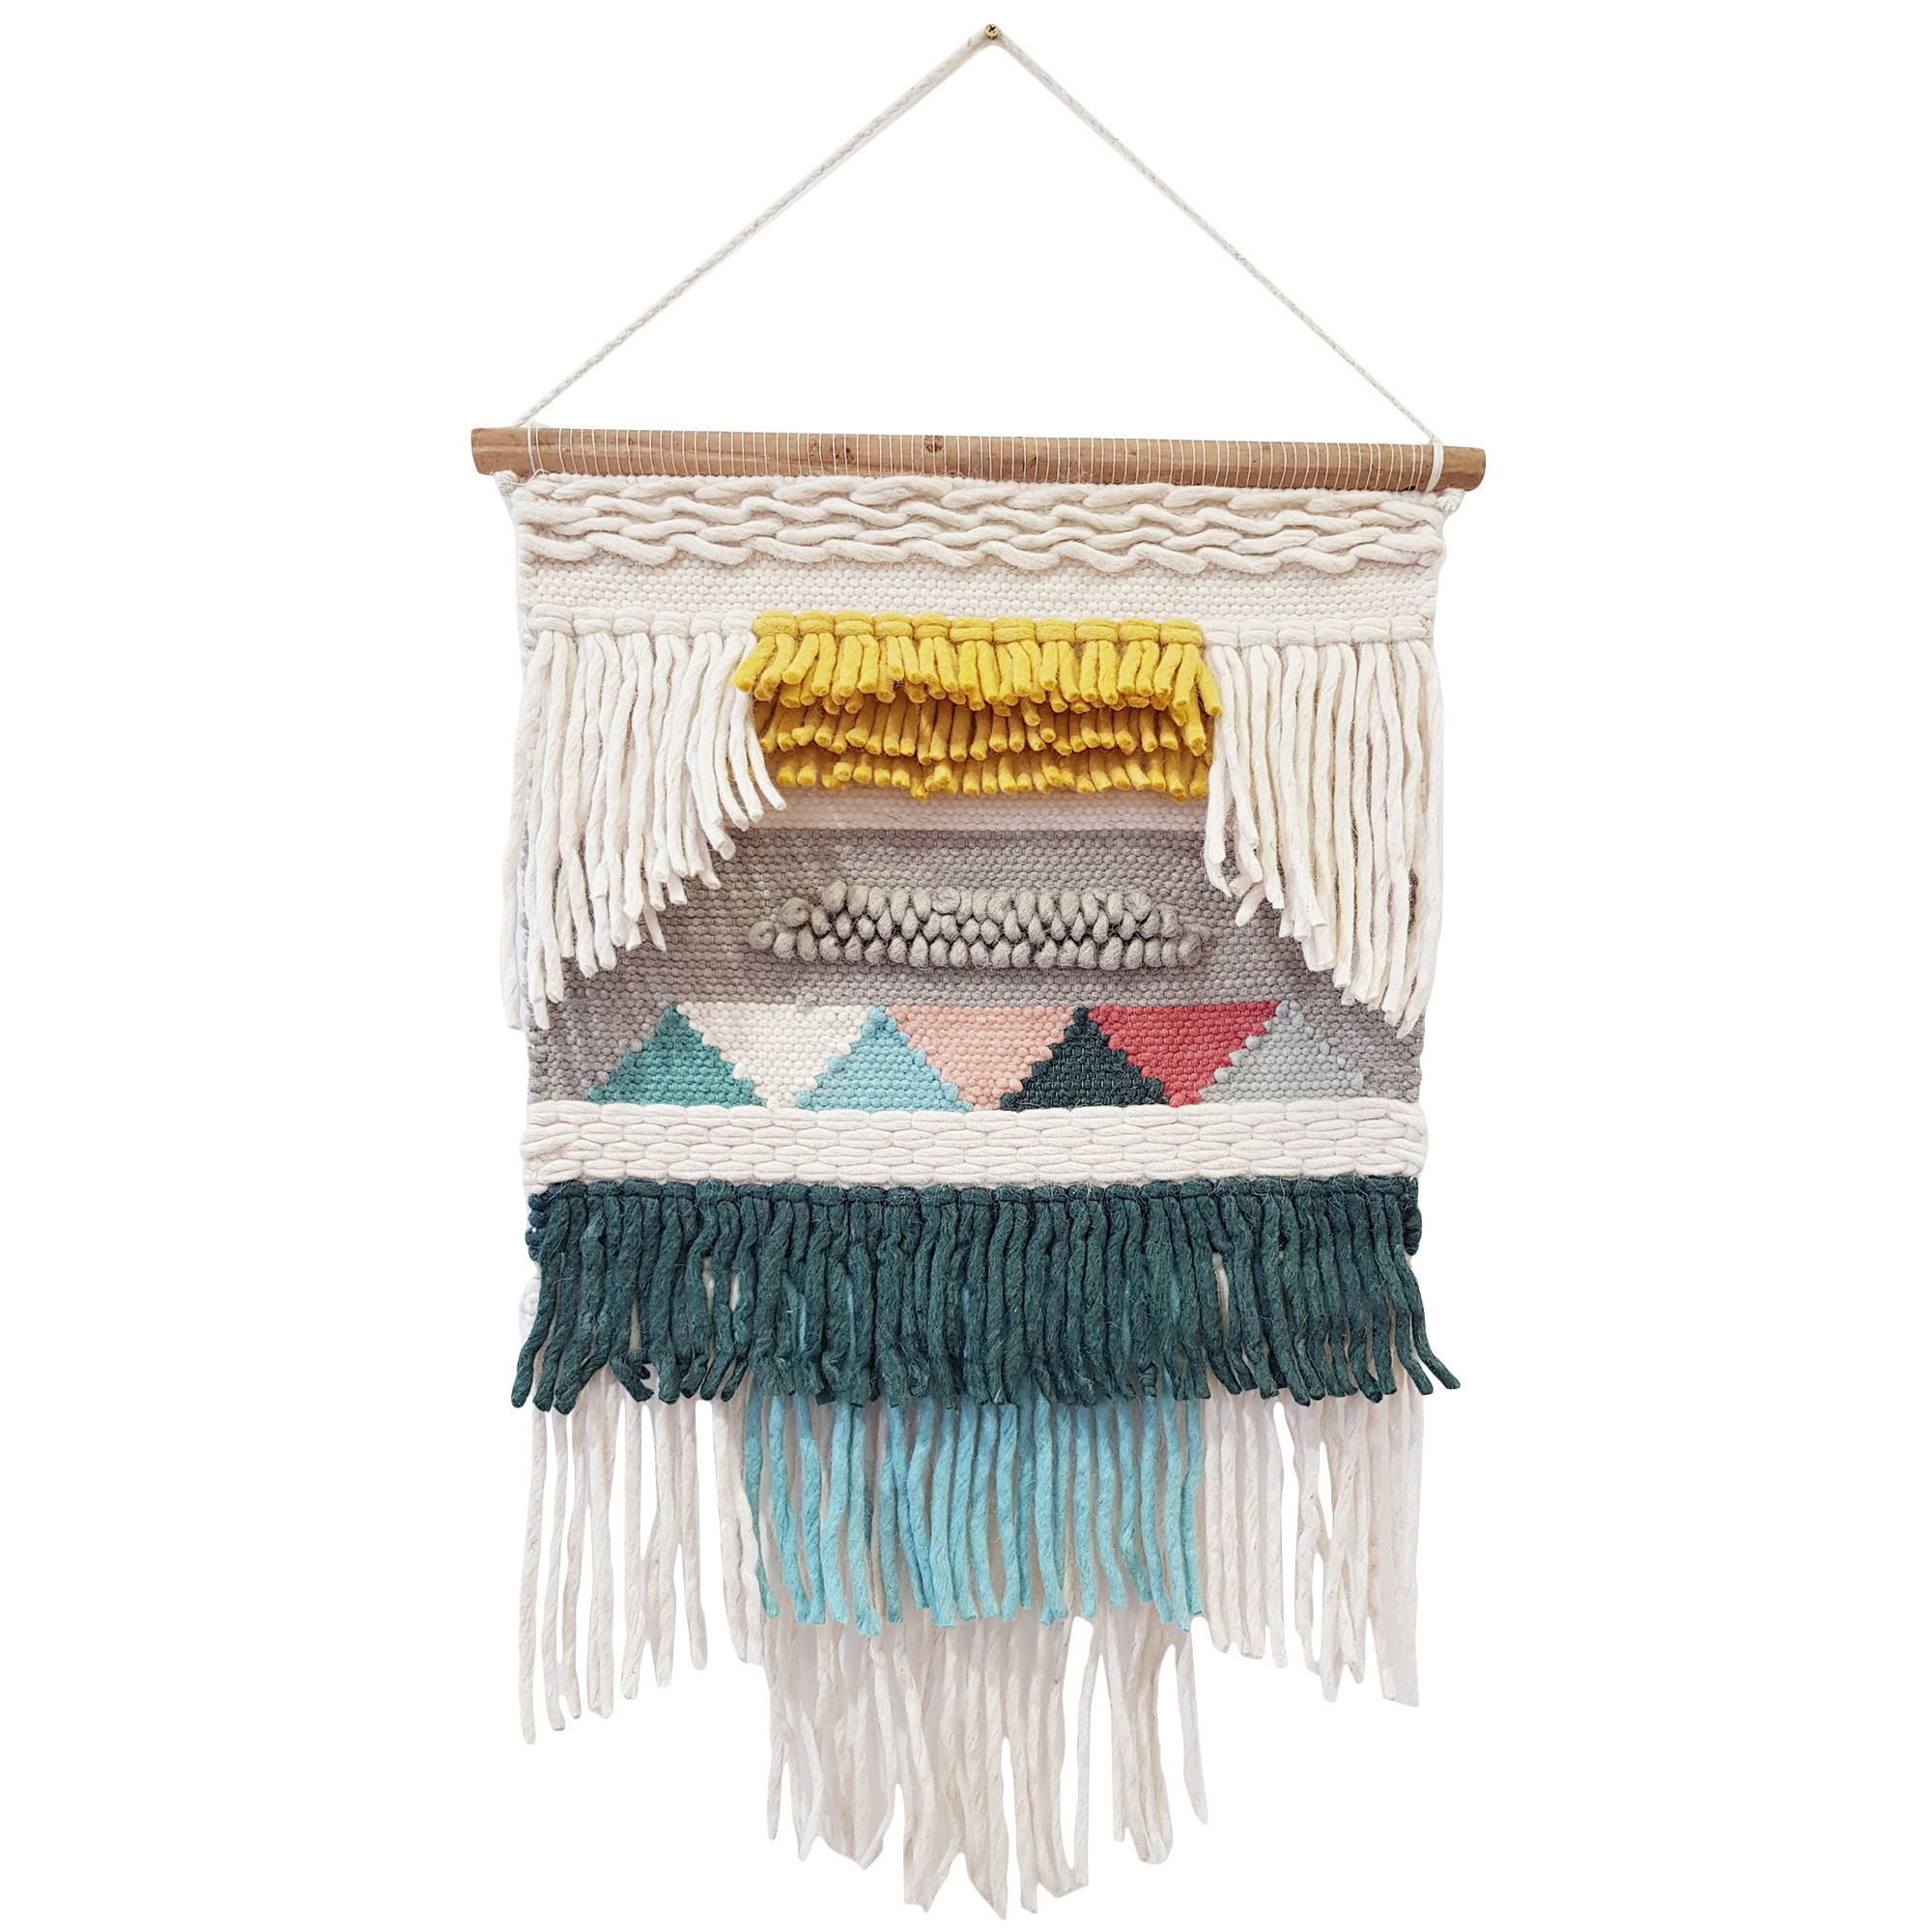 Rosa Handwoven Wool Macrame Wall Hanging